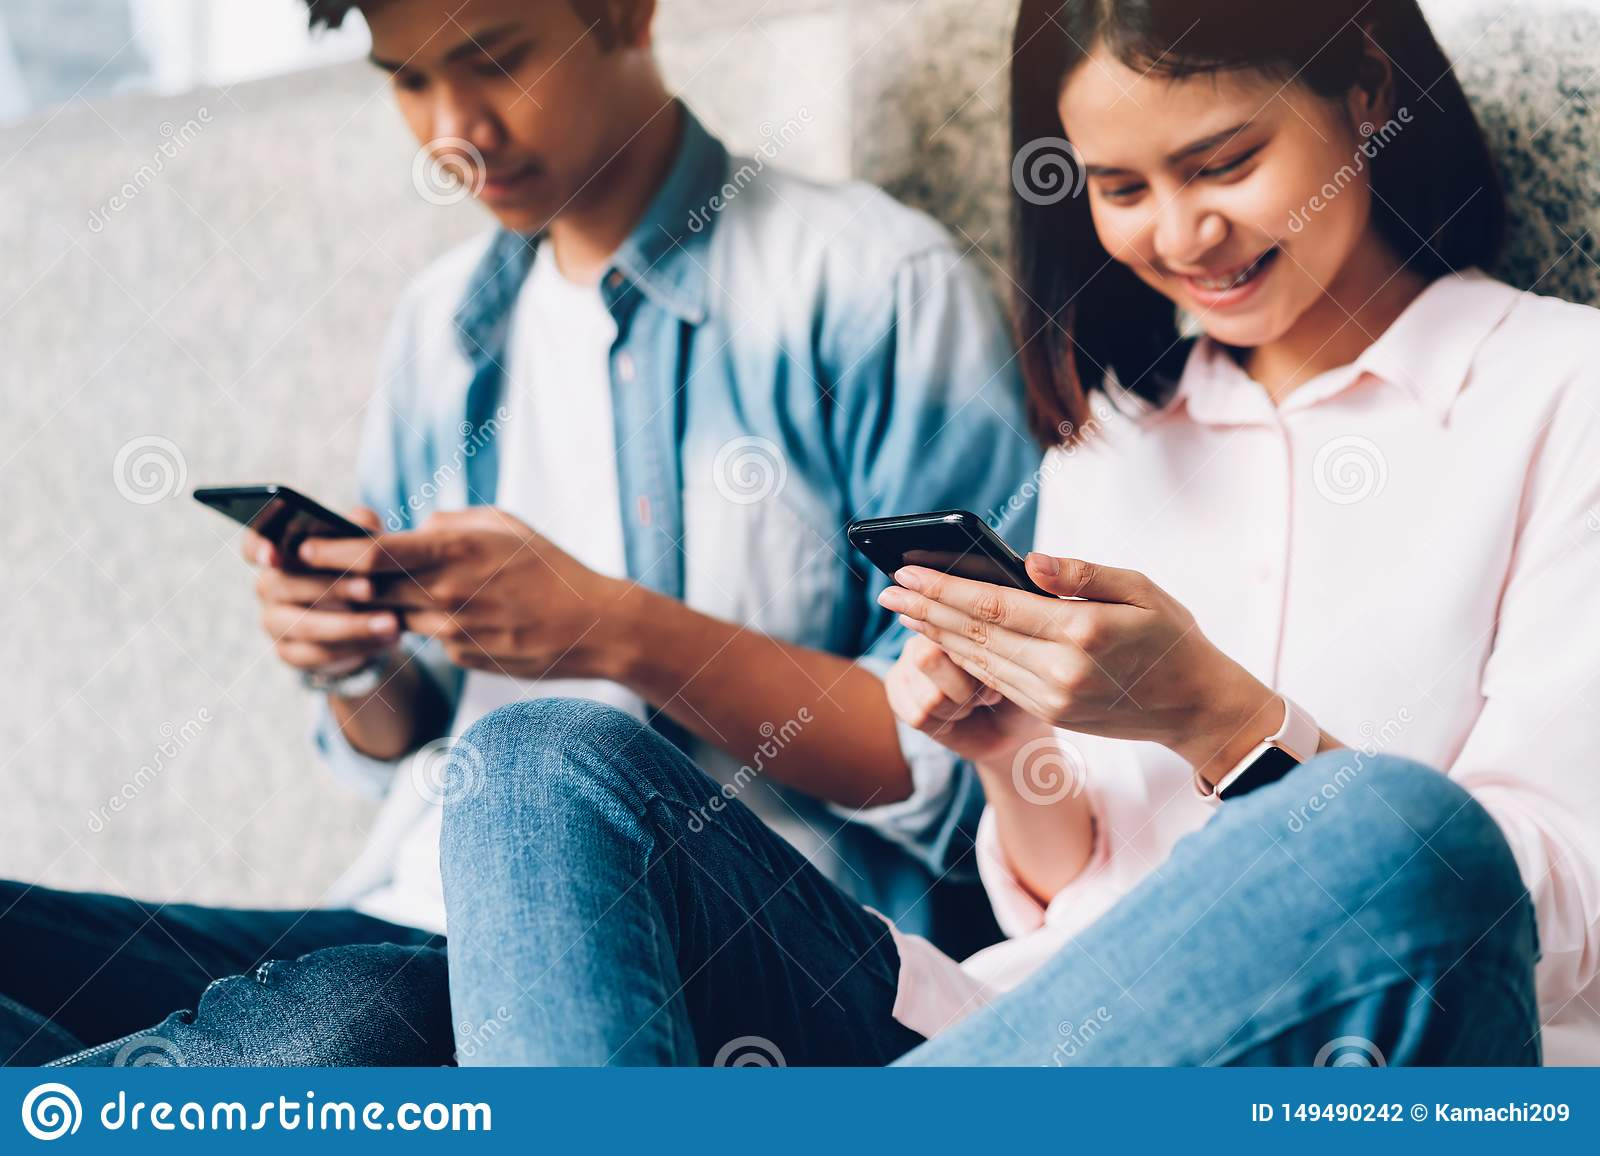 Young people are using smartphone and smiling while sitting on free time. technology concept.